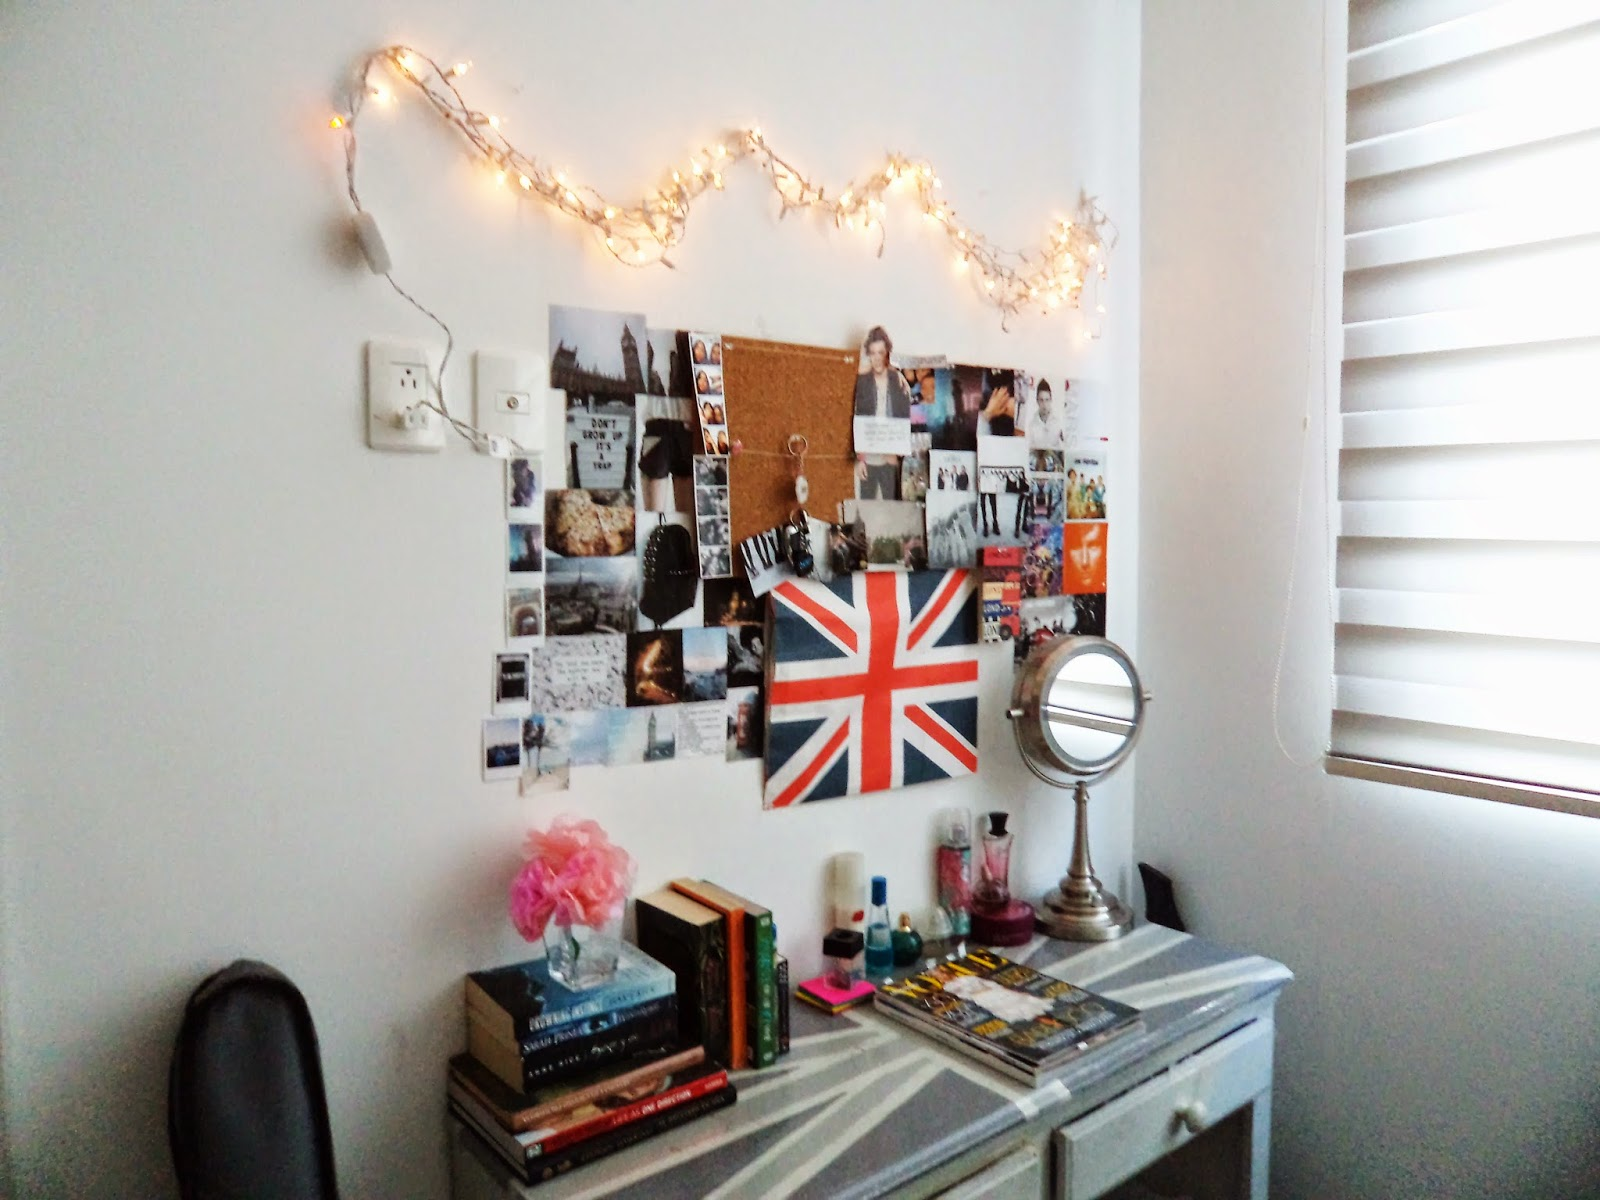 Diy decora tu cuarto estilo tumblr f cil y sin gastar for Ideas para decorar habitaciones con fotos